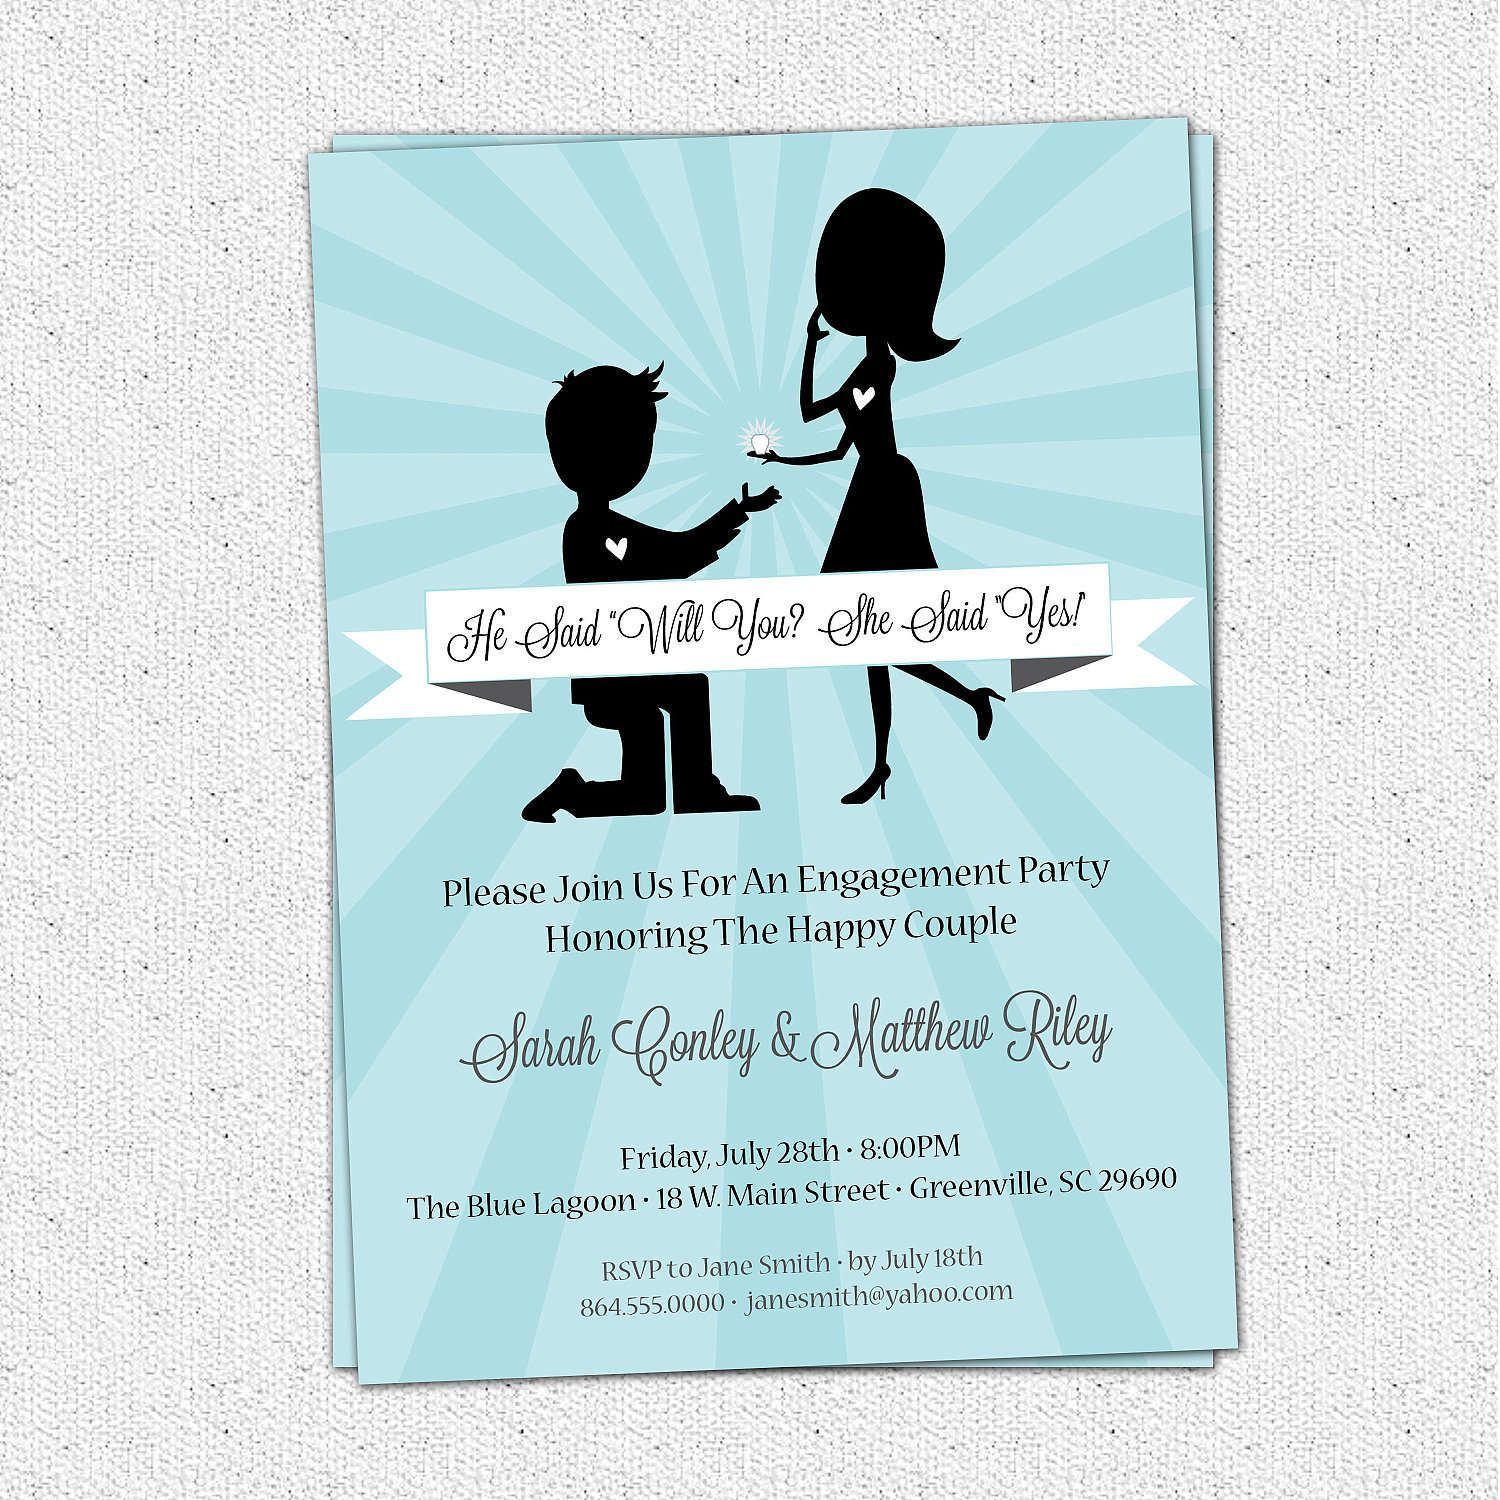 Free Engagement Invitation Templates Engagement Party Invitation Templates  Engagement Invitations .